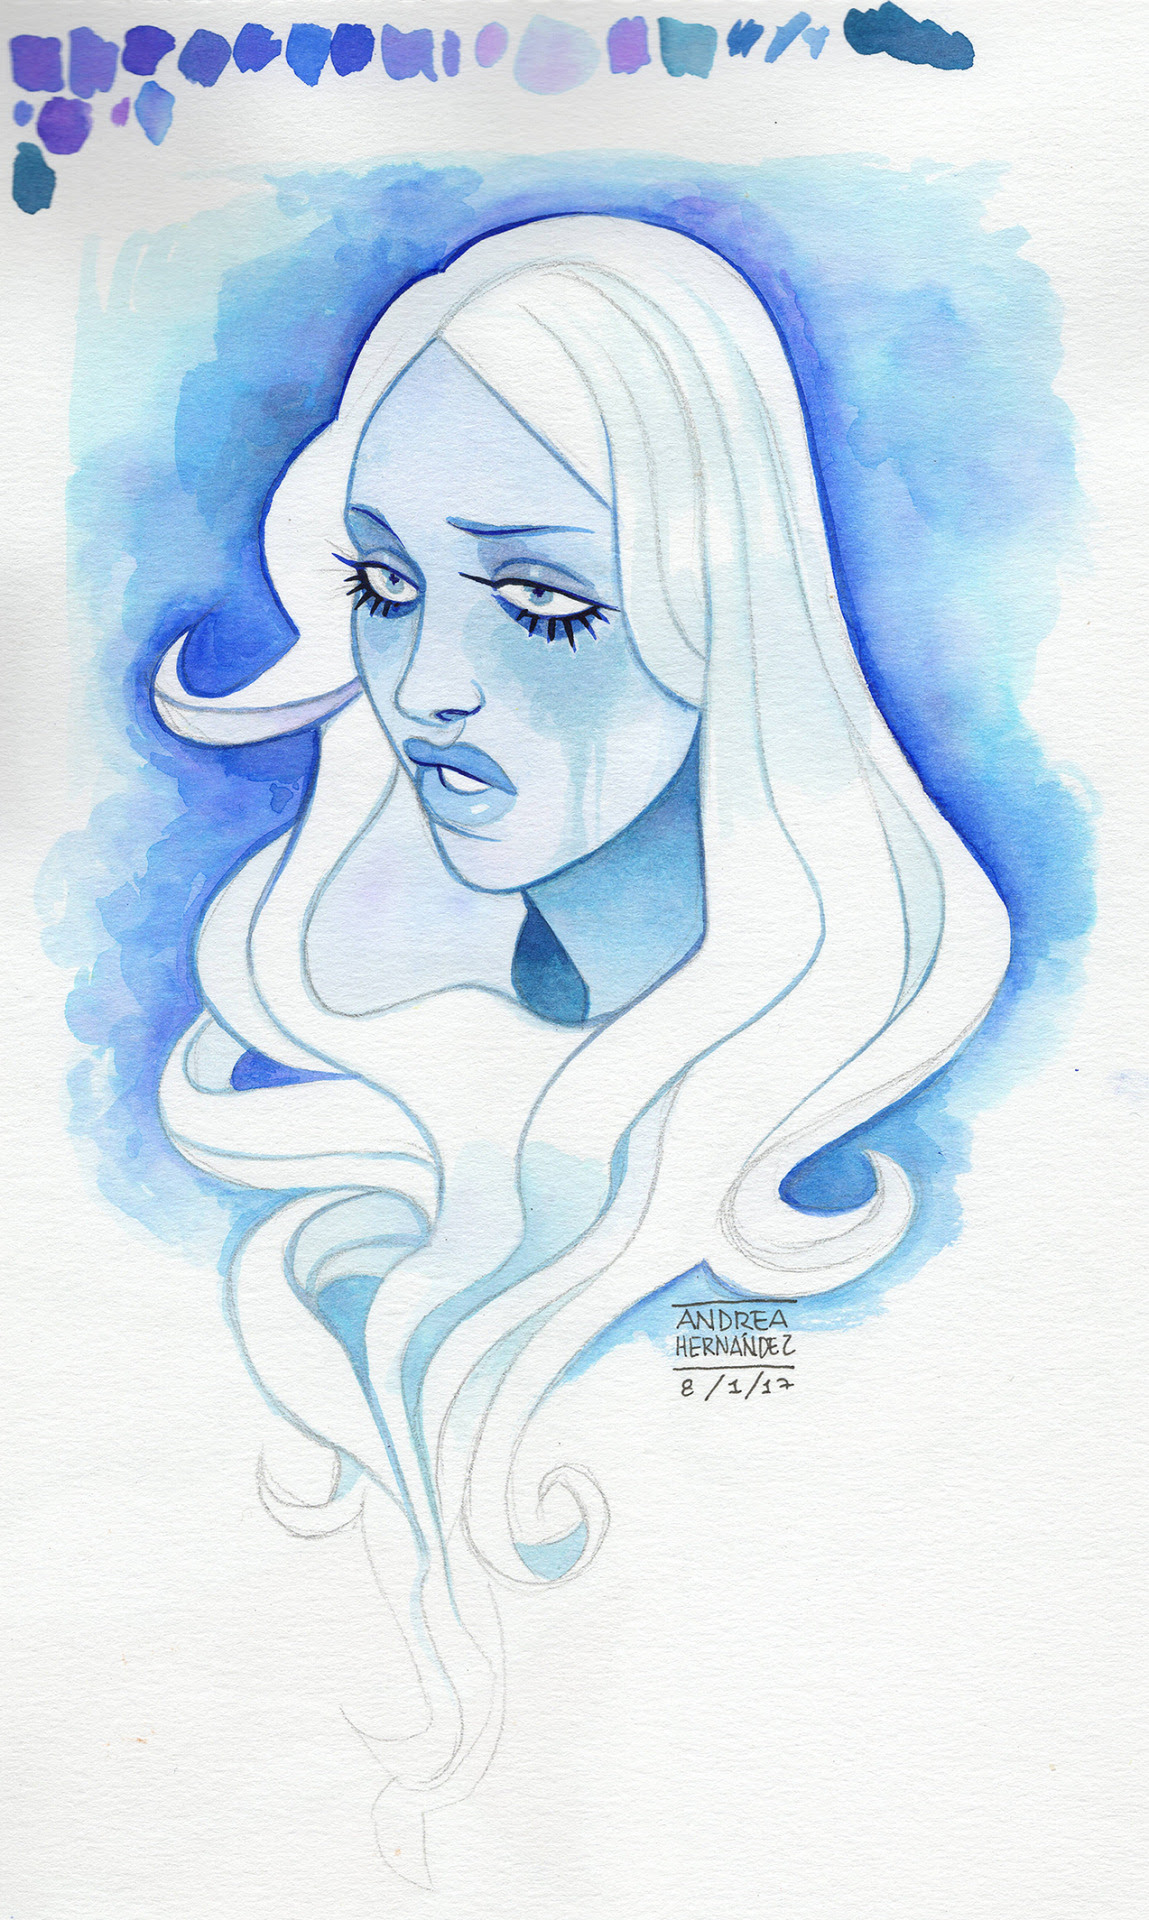 Watercolor Blue D ~ Sorry for the bad quality, I wish I could scan it Please, don't use or repost without permission ;-) Por favor, no lo uses o re-postees sin mi permiso ;-)